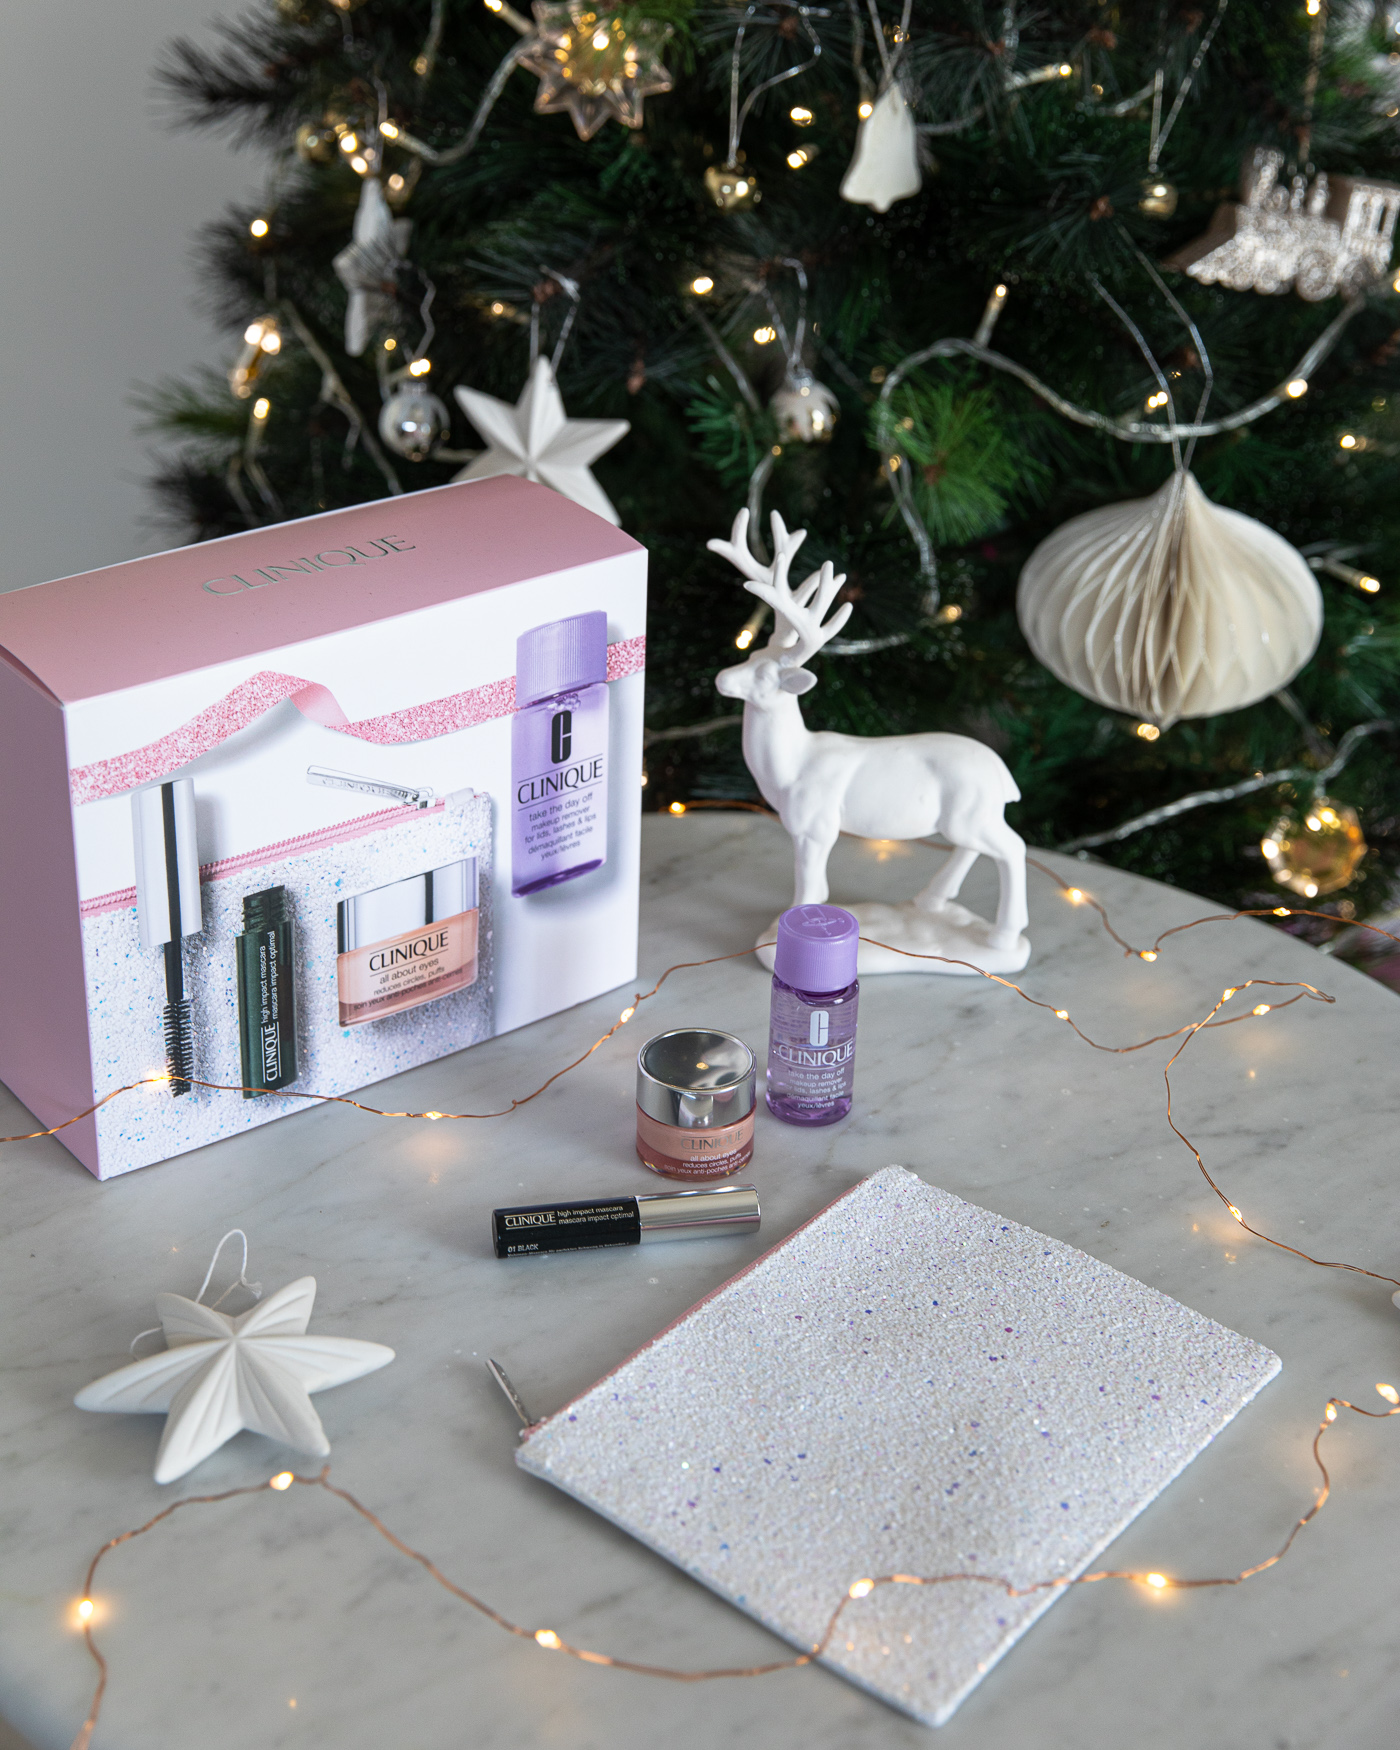 The Ultimate beauty Christmas gift guide from Inspiring Wit blog